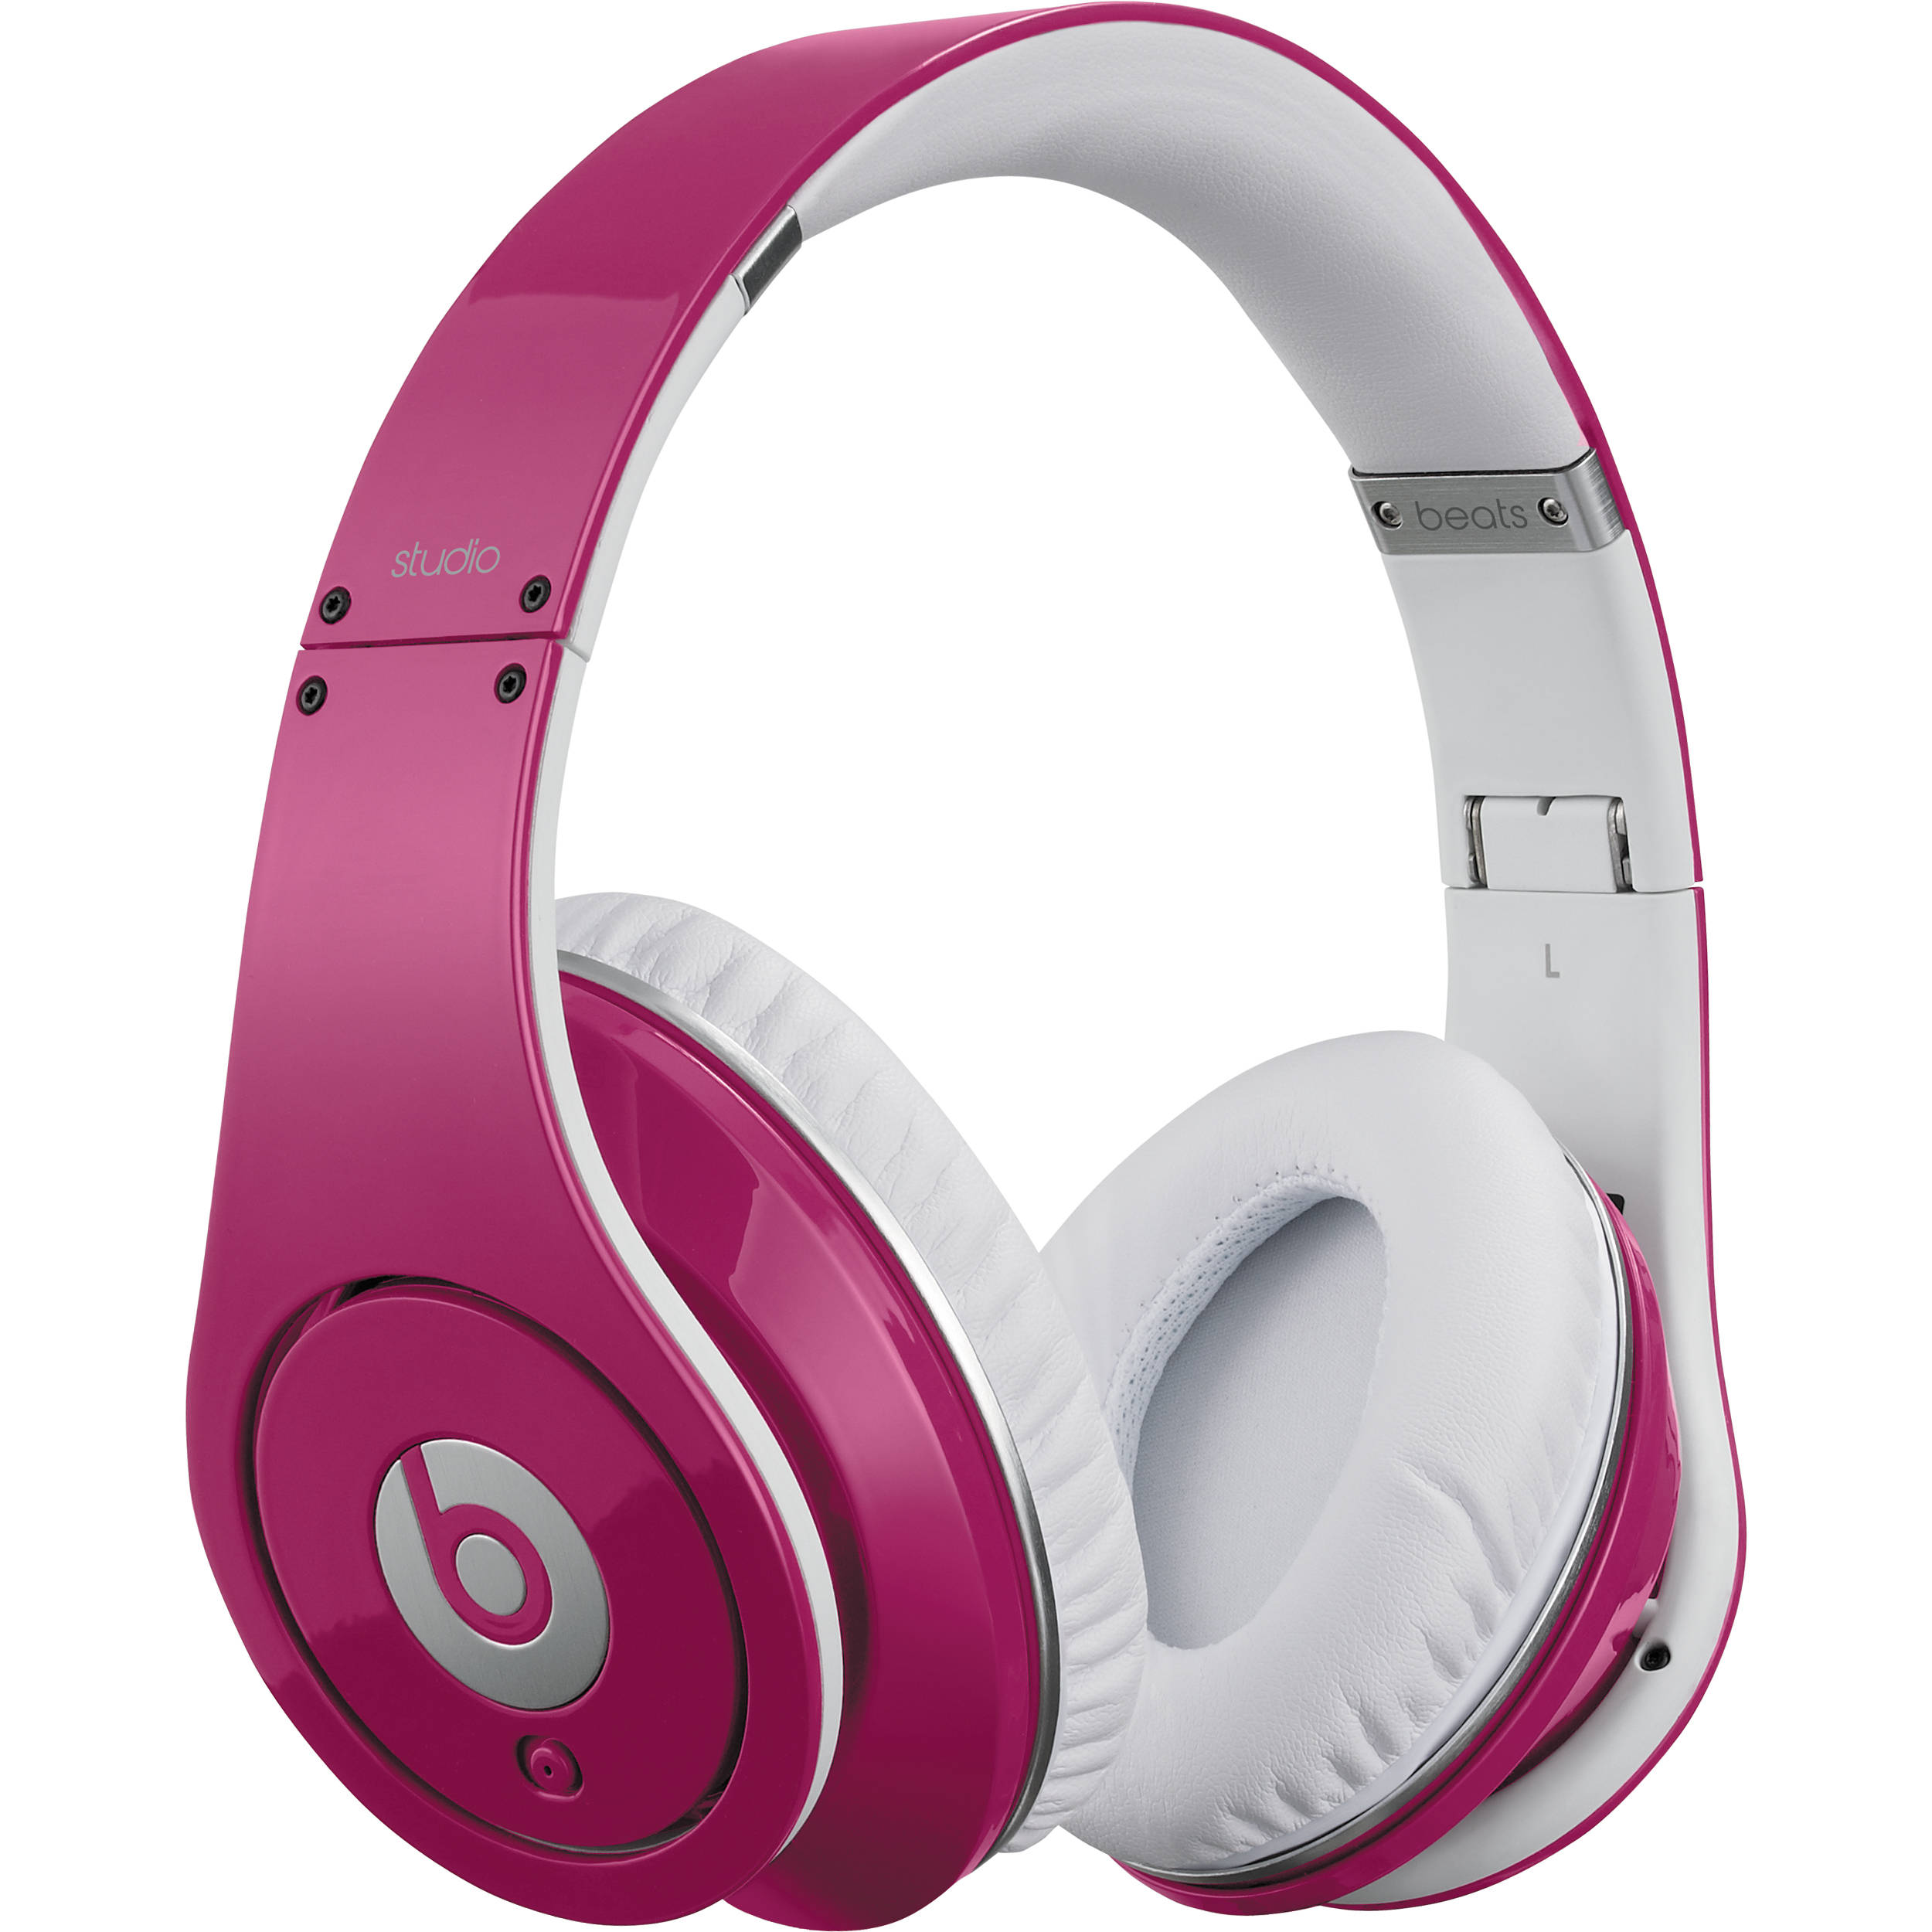 Beats By Dr Dre Beats Studio High Definition Isolation Headphones Pink